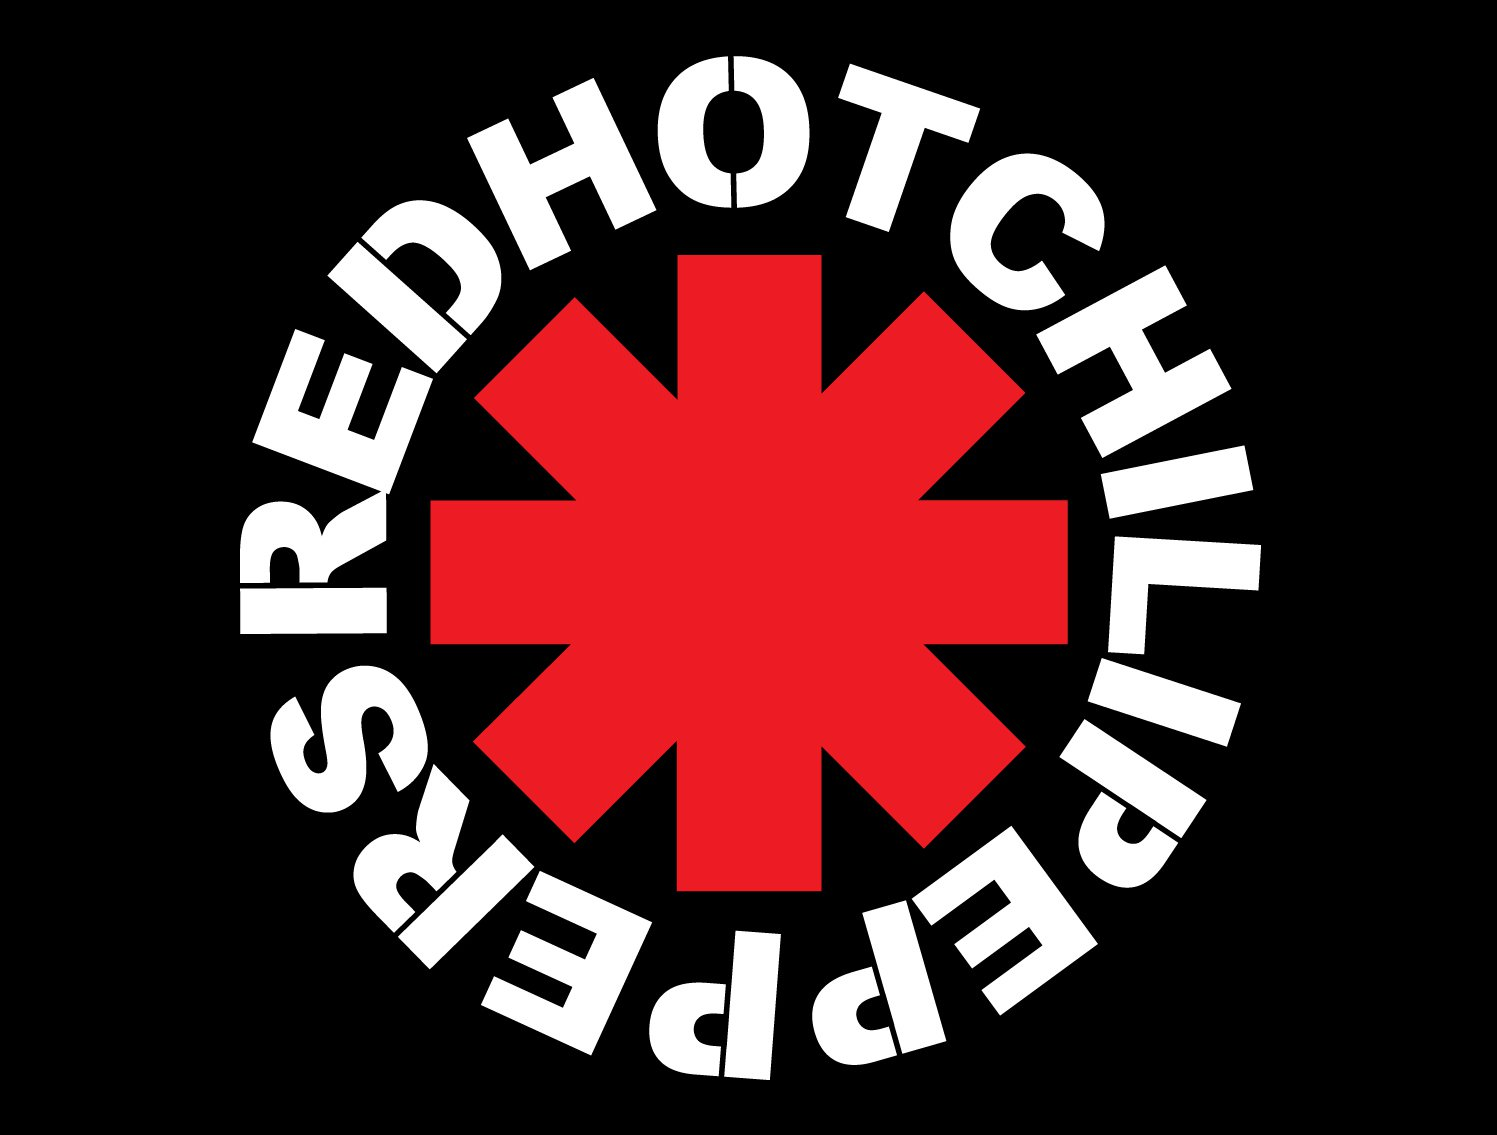 Red hot chili peppers logo red hot chili peppers symbol meaning symbol red hot chili peppers biocorpaavc